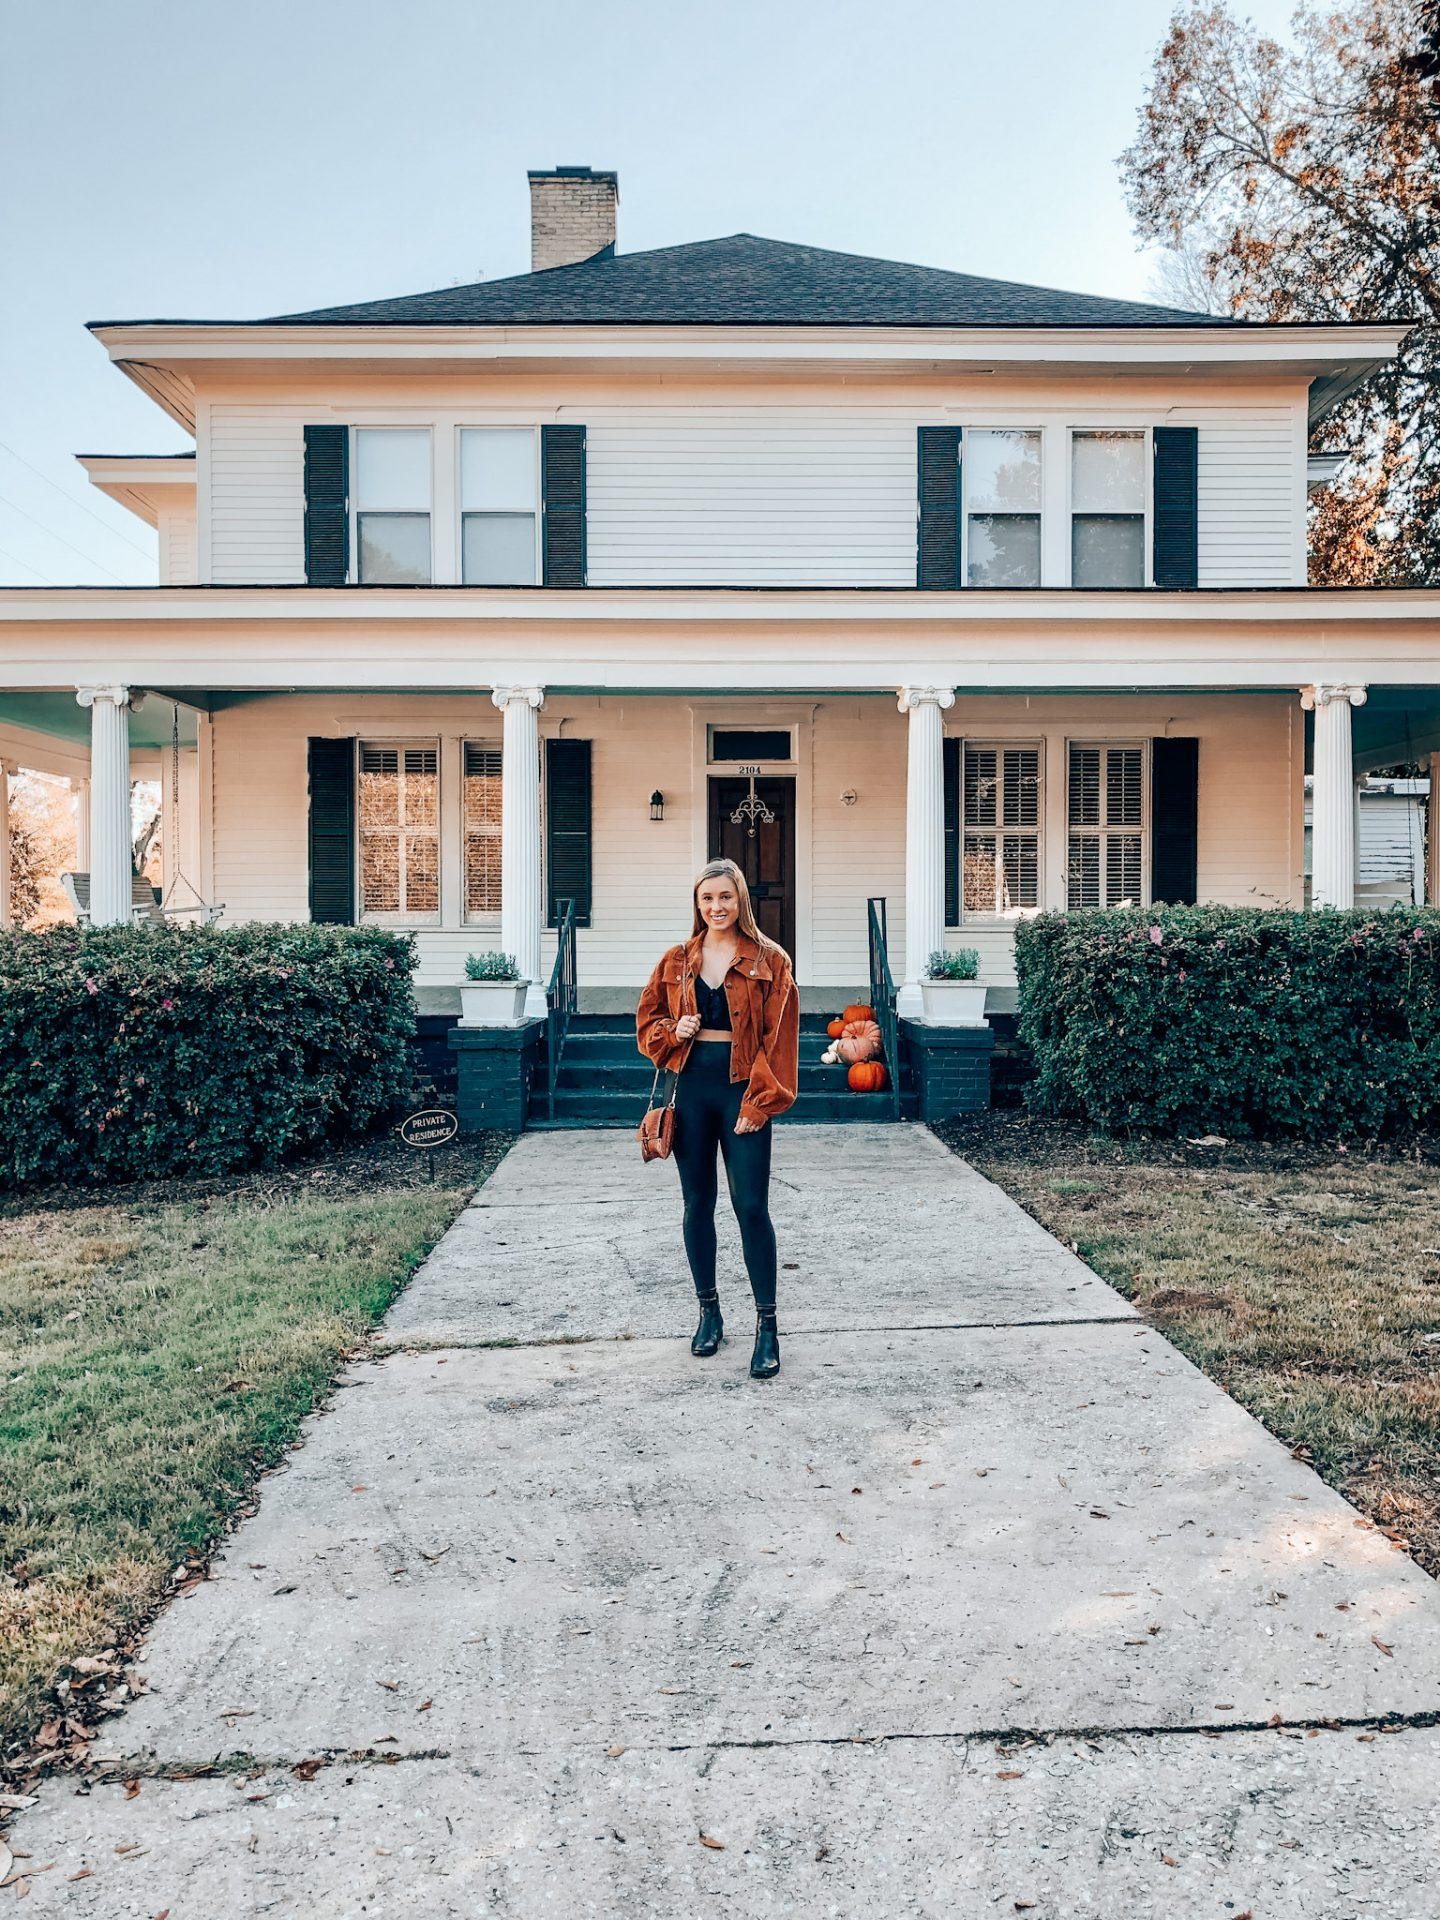 Elena's house in the Vampire Diaries